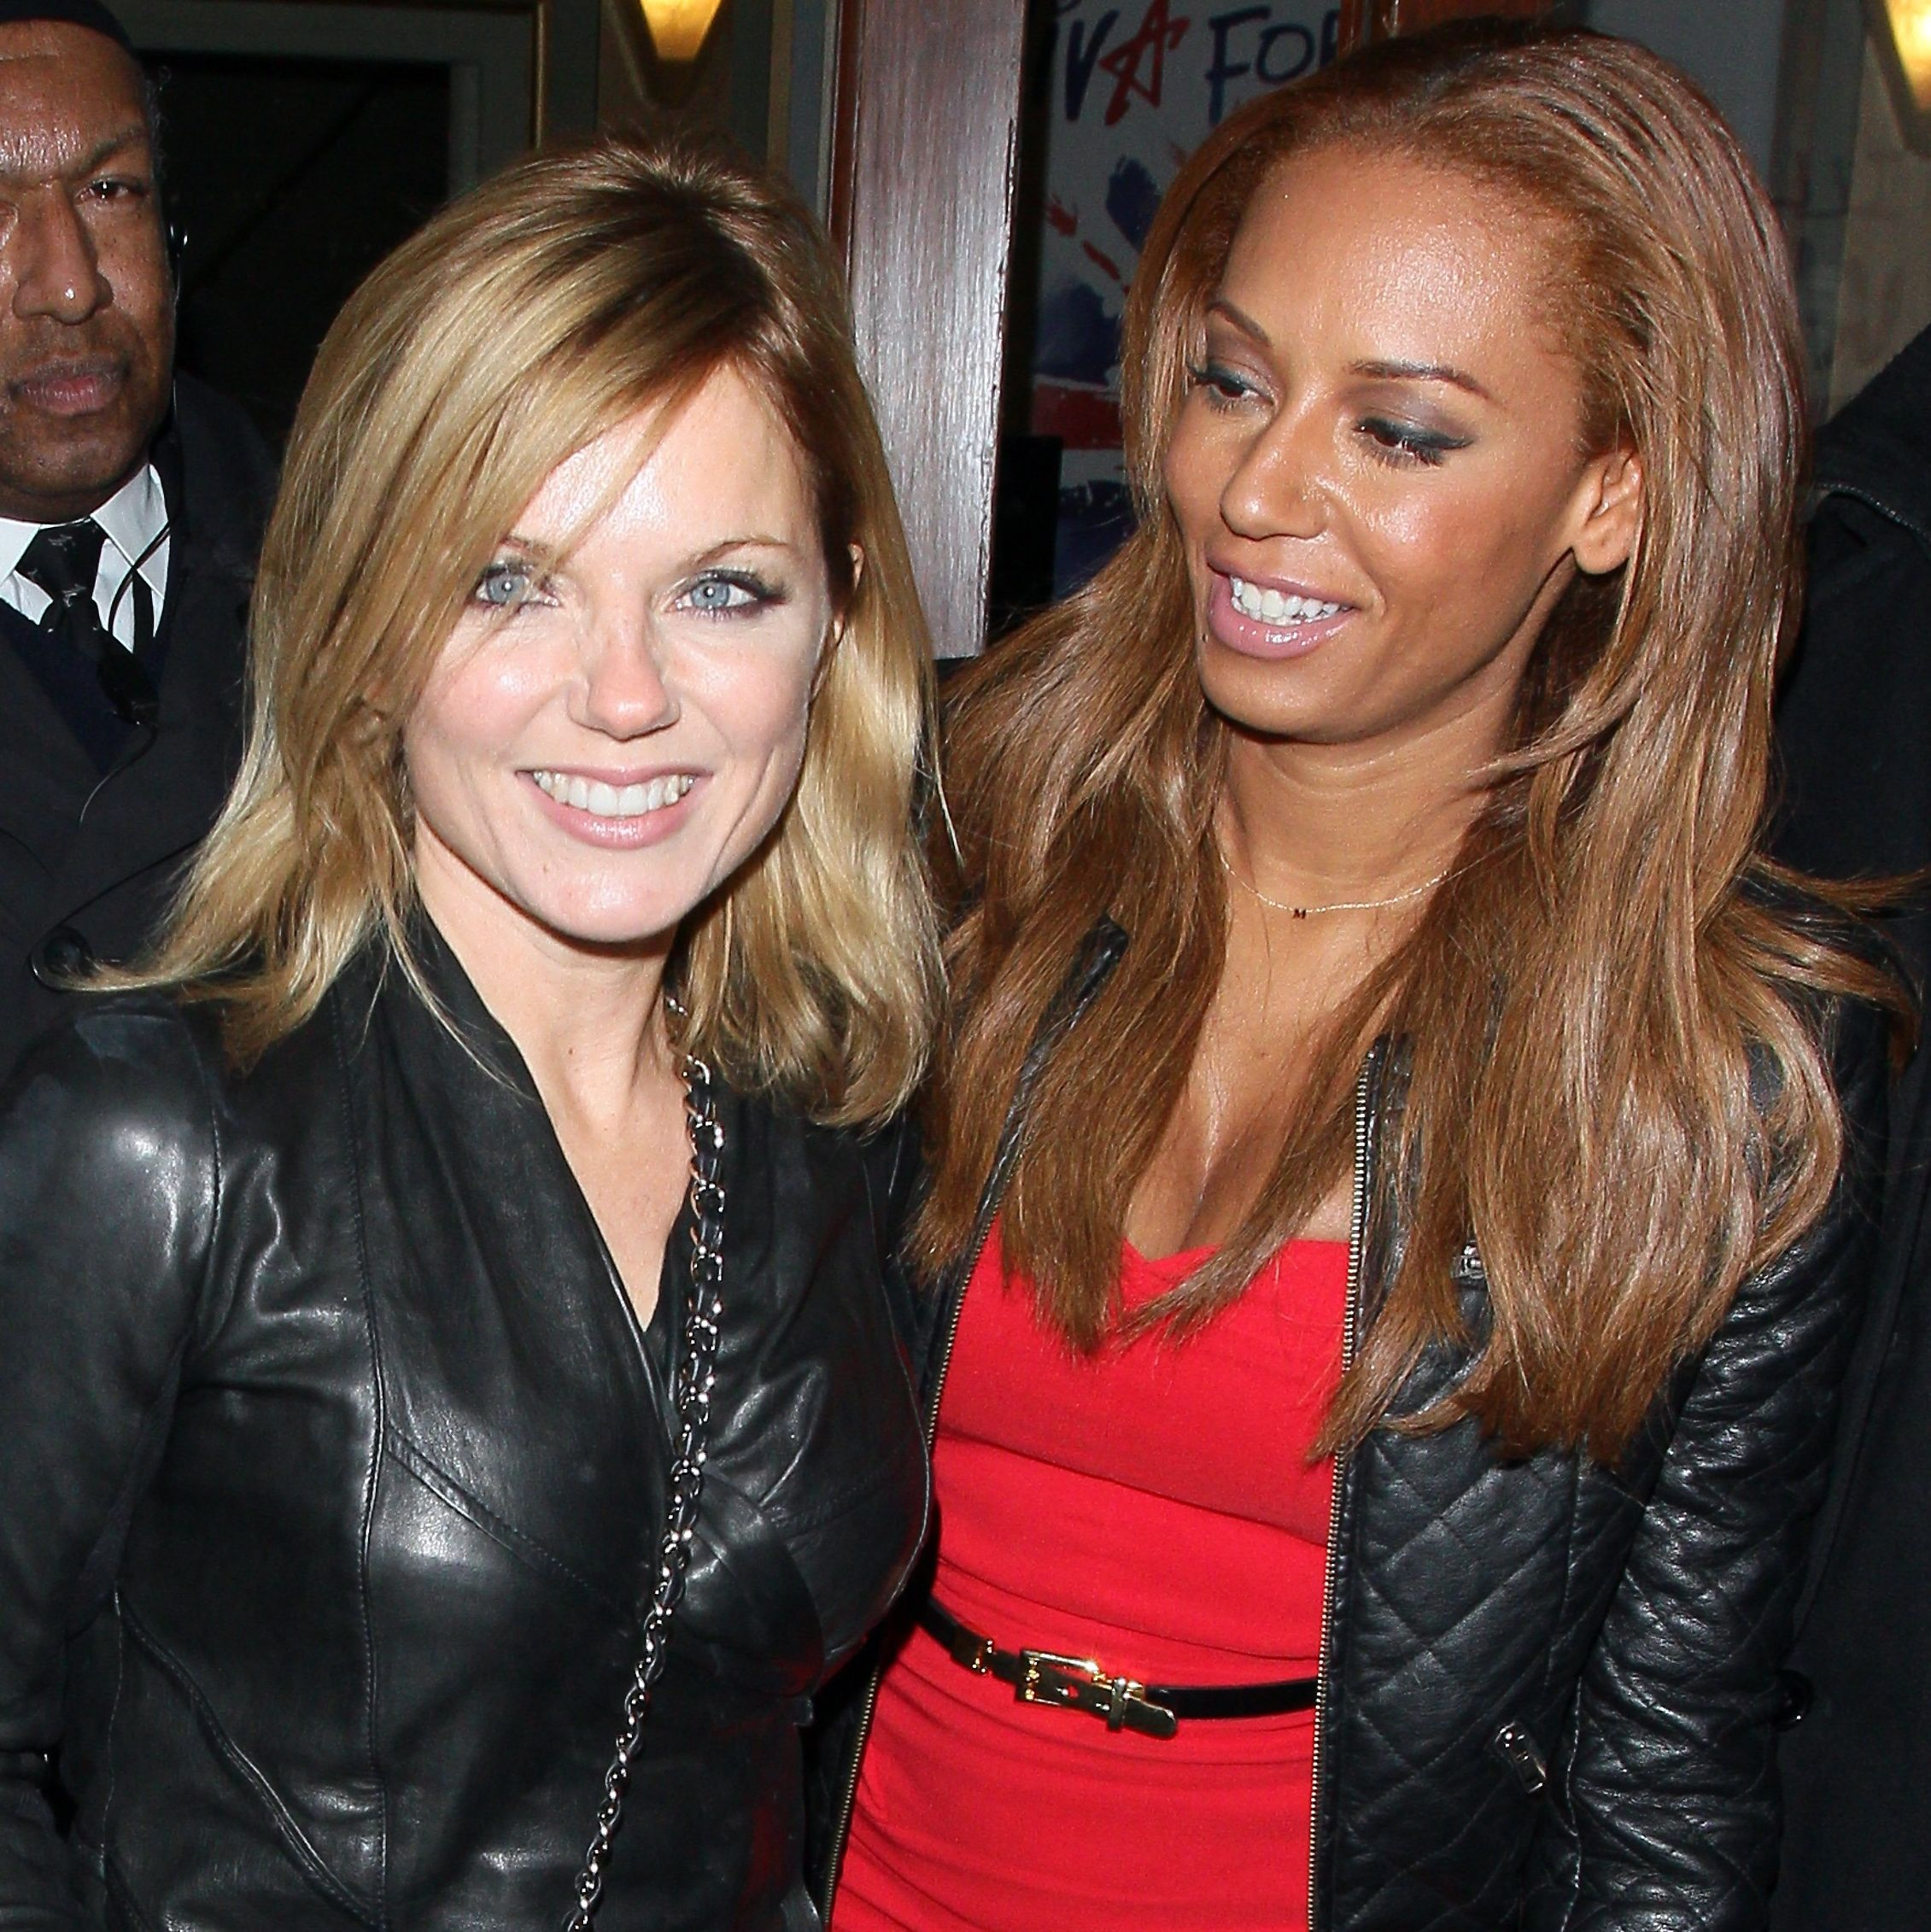 Mel B and Geri Halliwell Once Hooked Up & It's Causing All Kinds of Drama